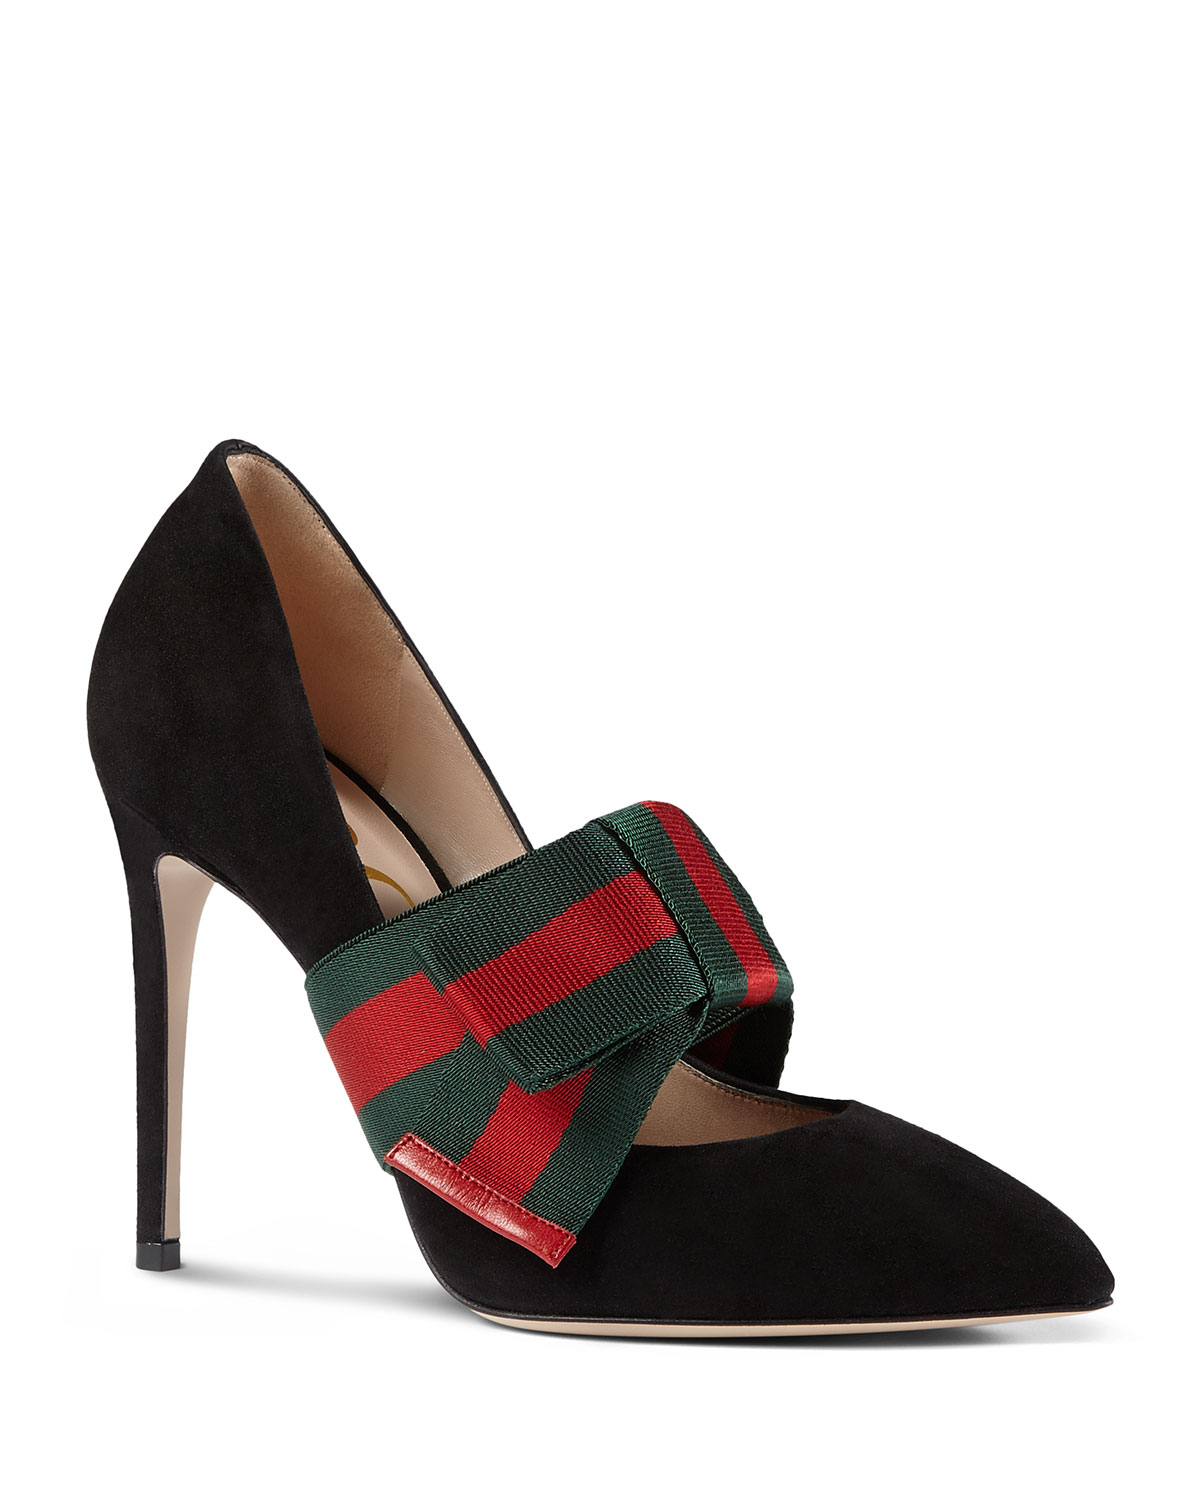 7d774bc7aec Gucci Sylvie Suede Web Mary Jane Pumps